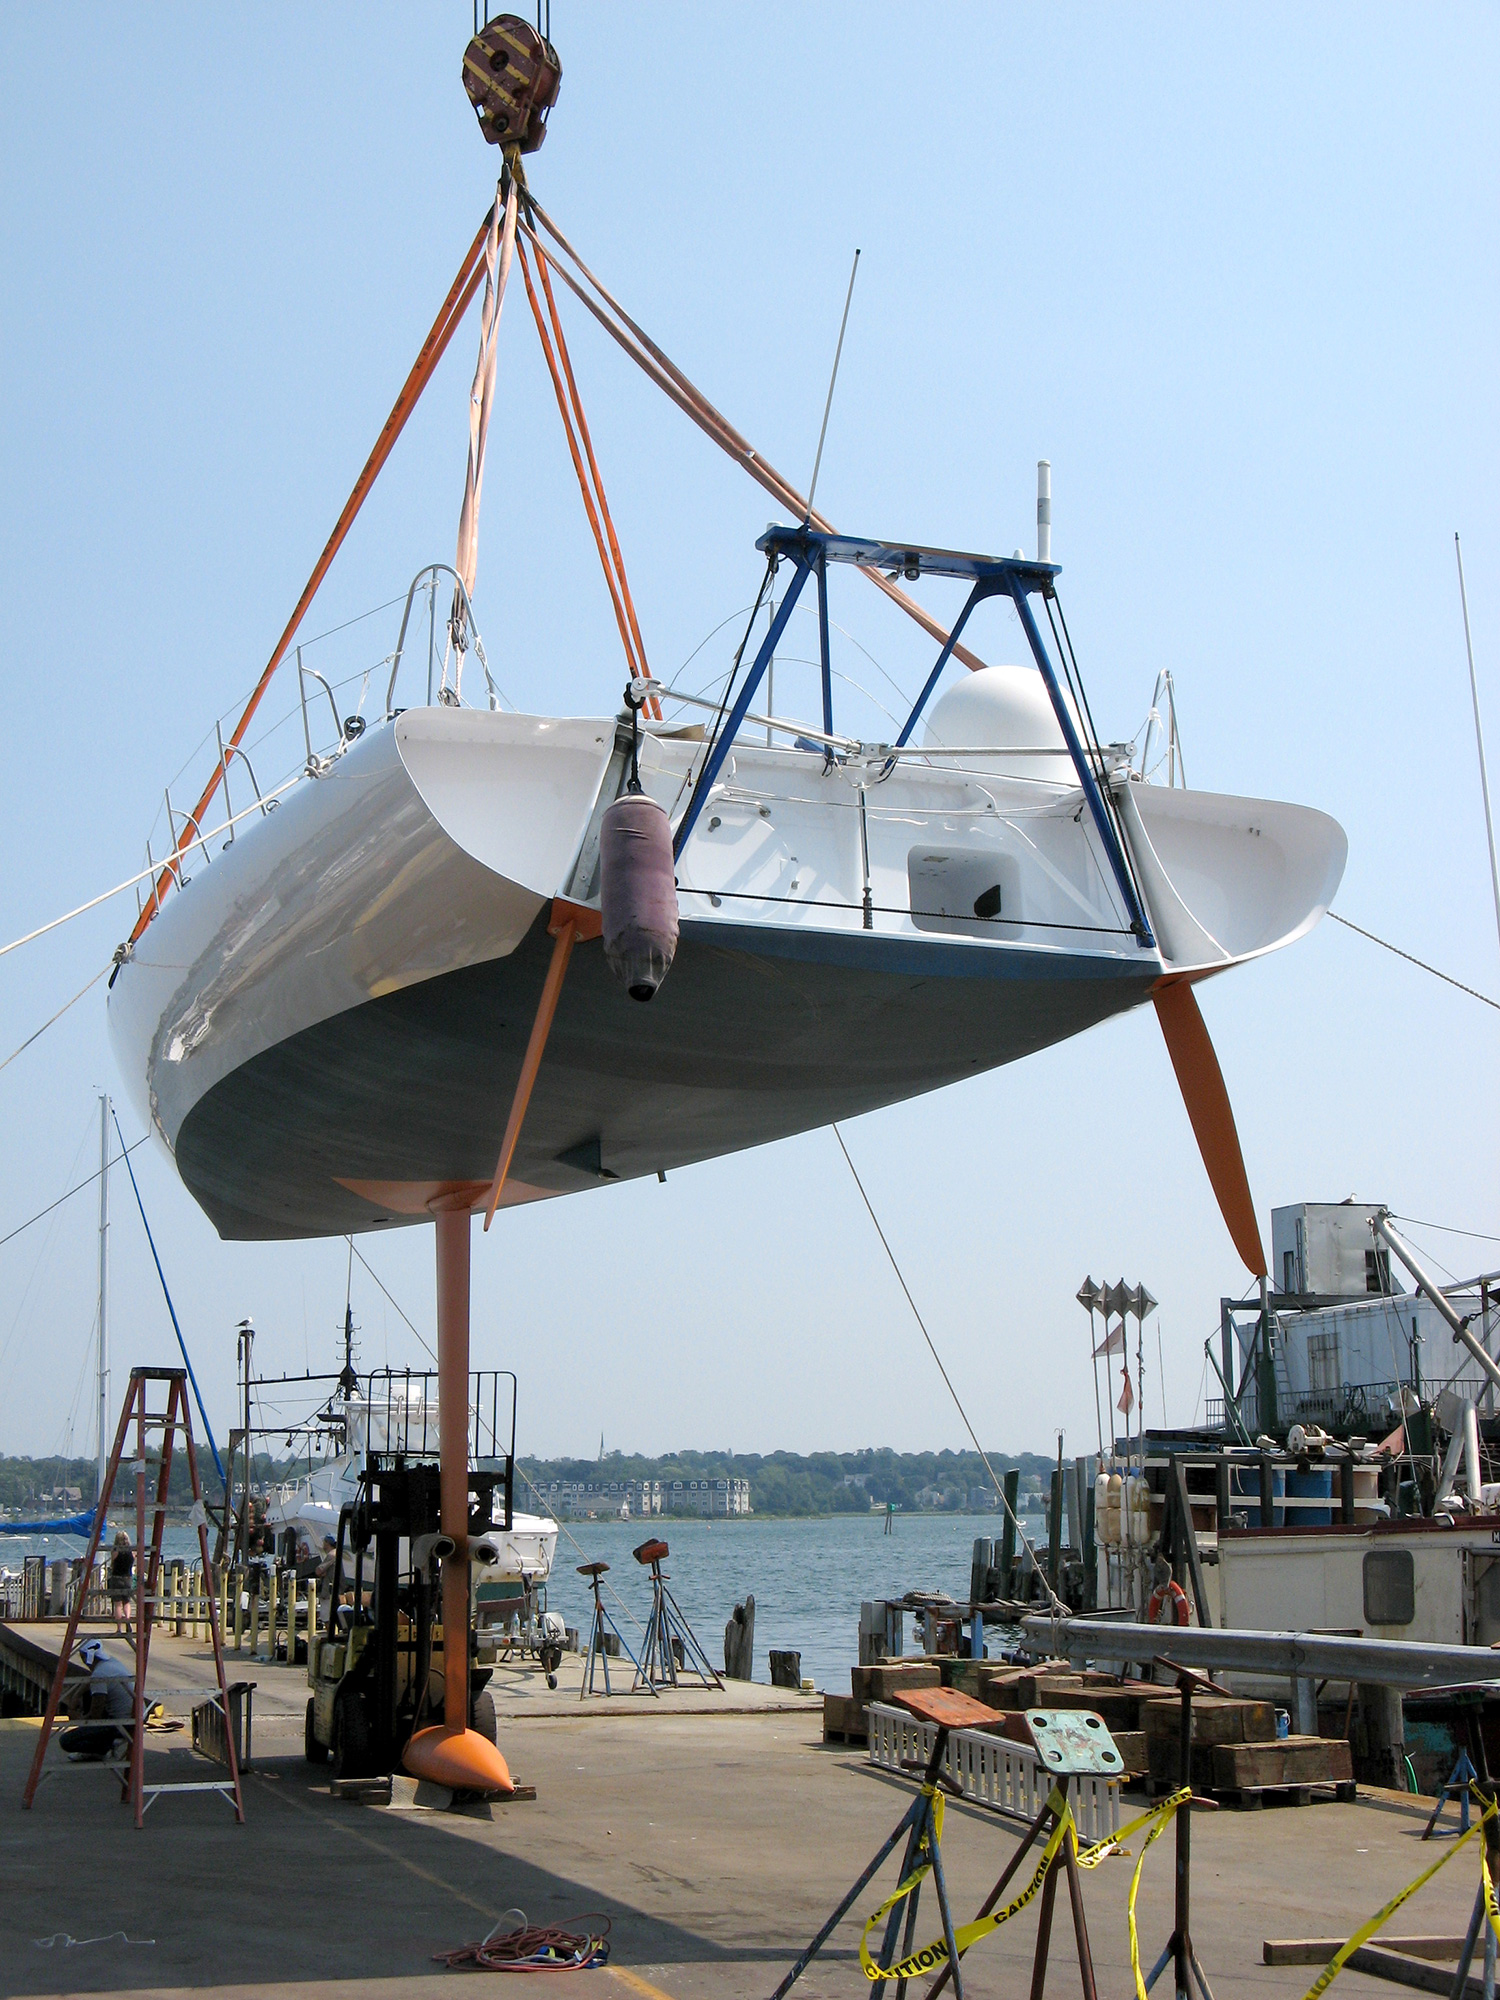 The keel installed after the refit.